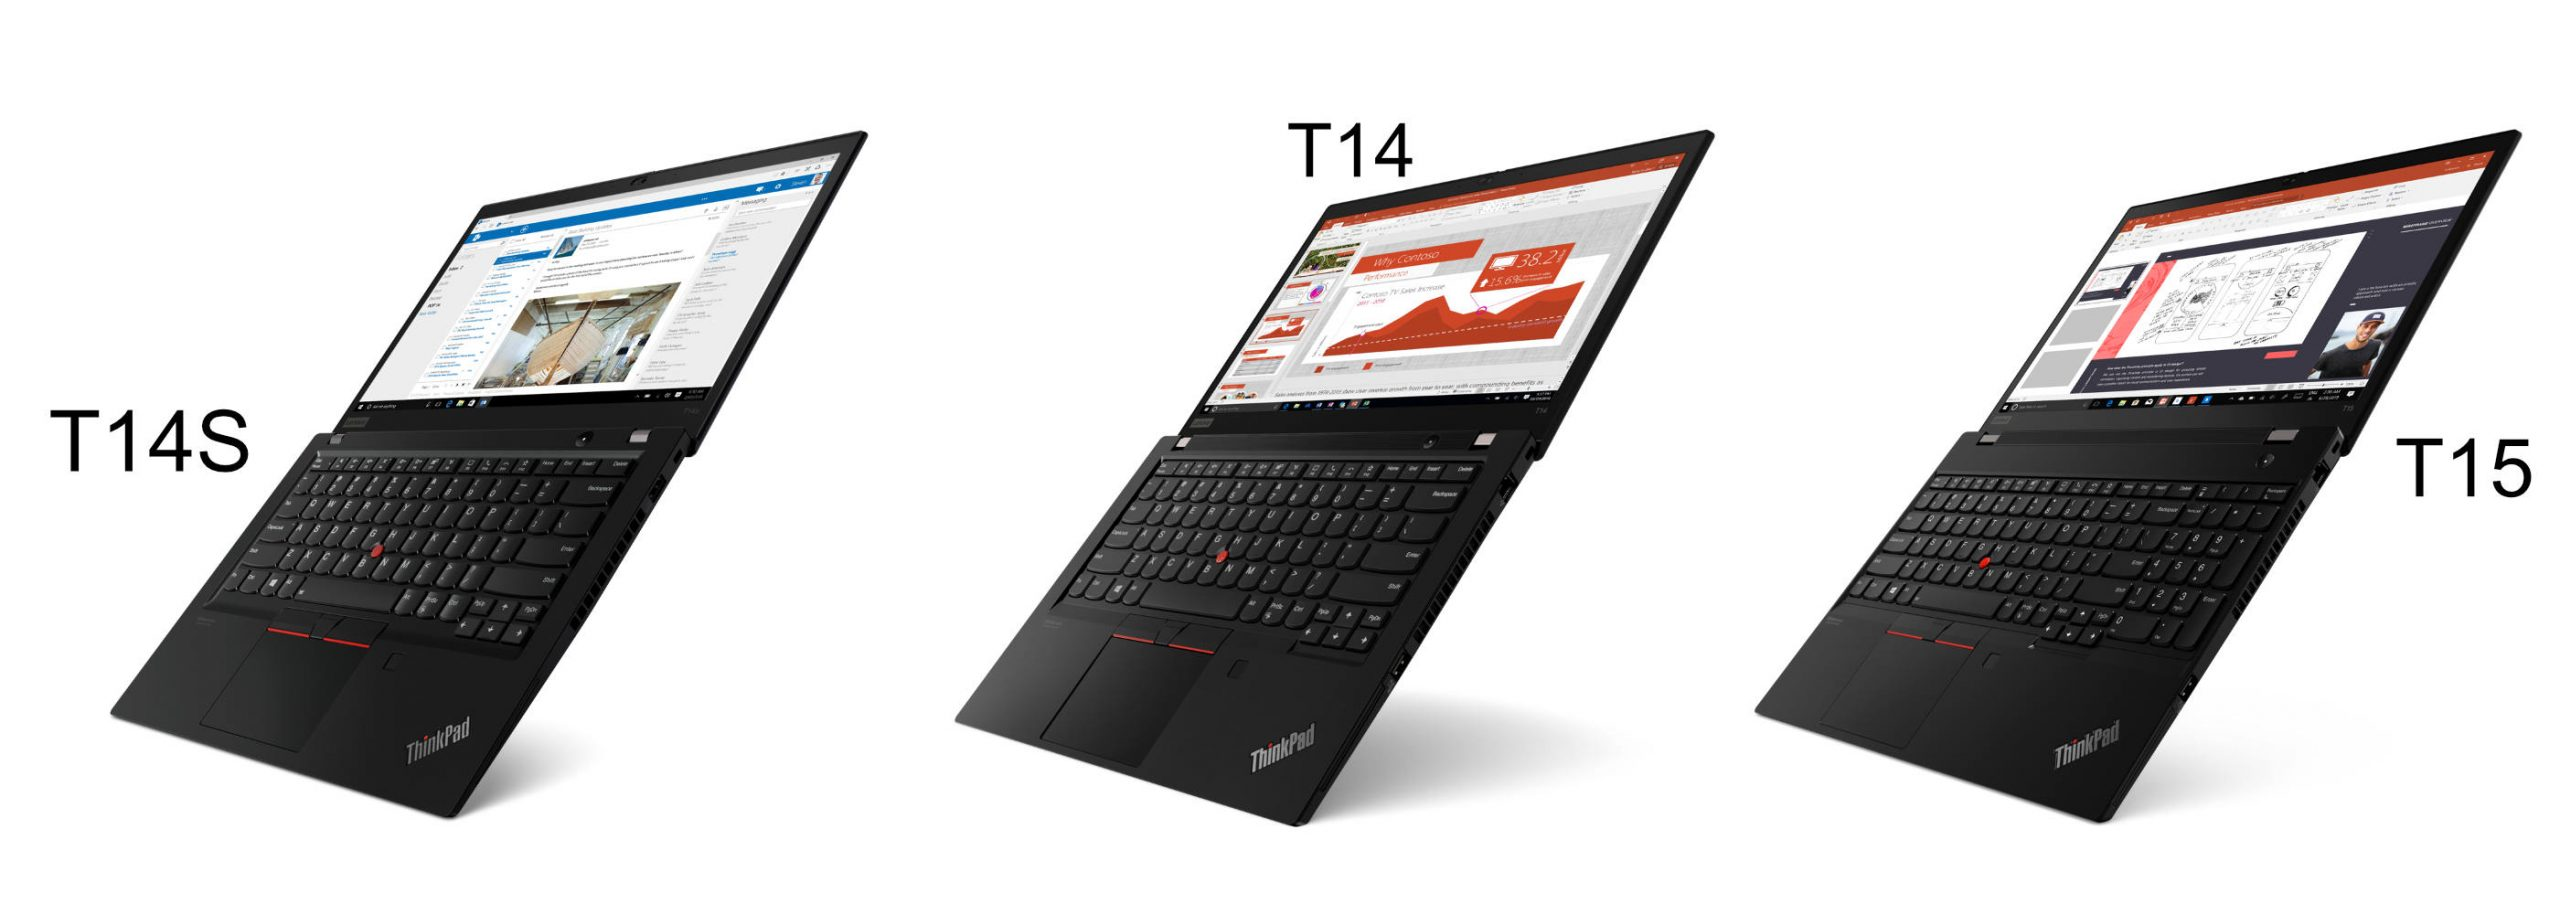 Lenovo 2020 ThinkPad Models